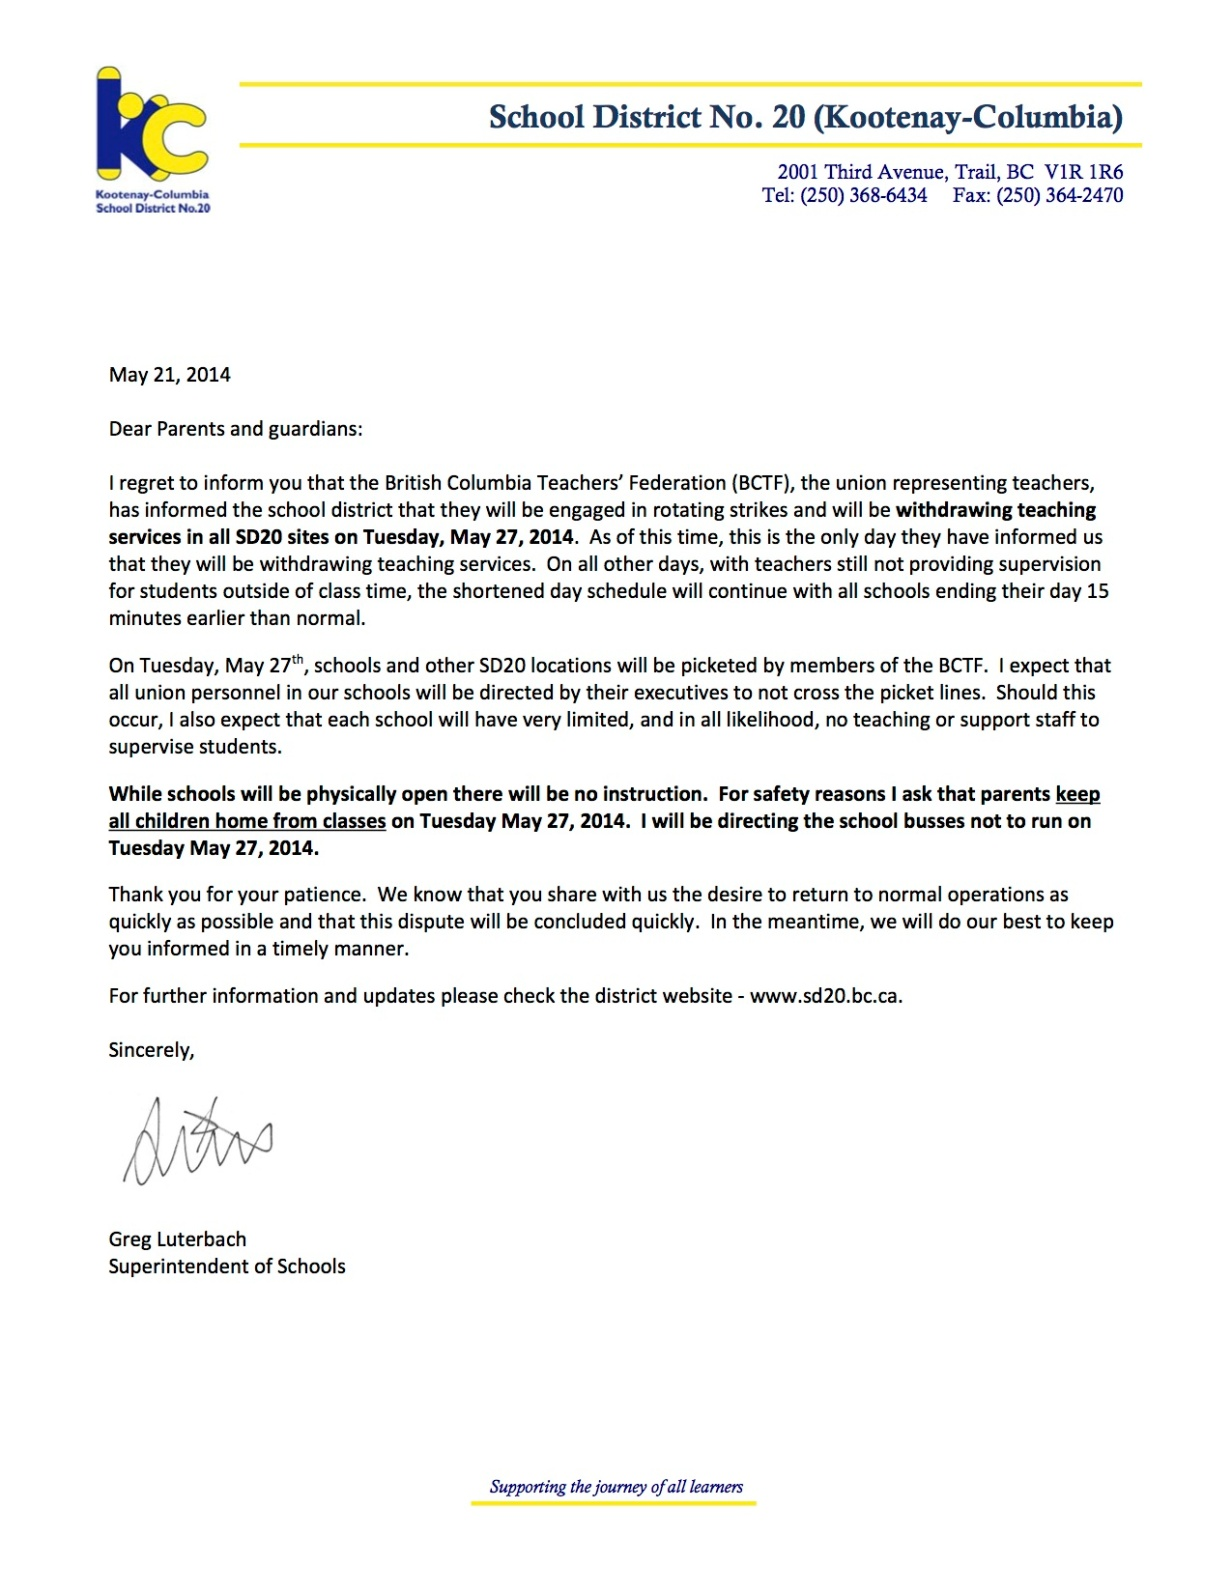 2014 05 21 Letter to Parents re rotating strikes